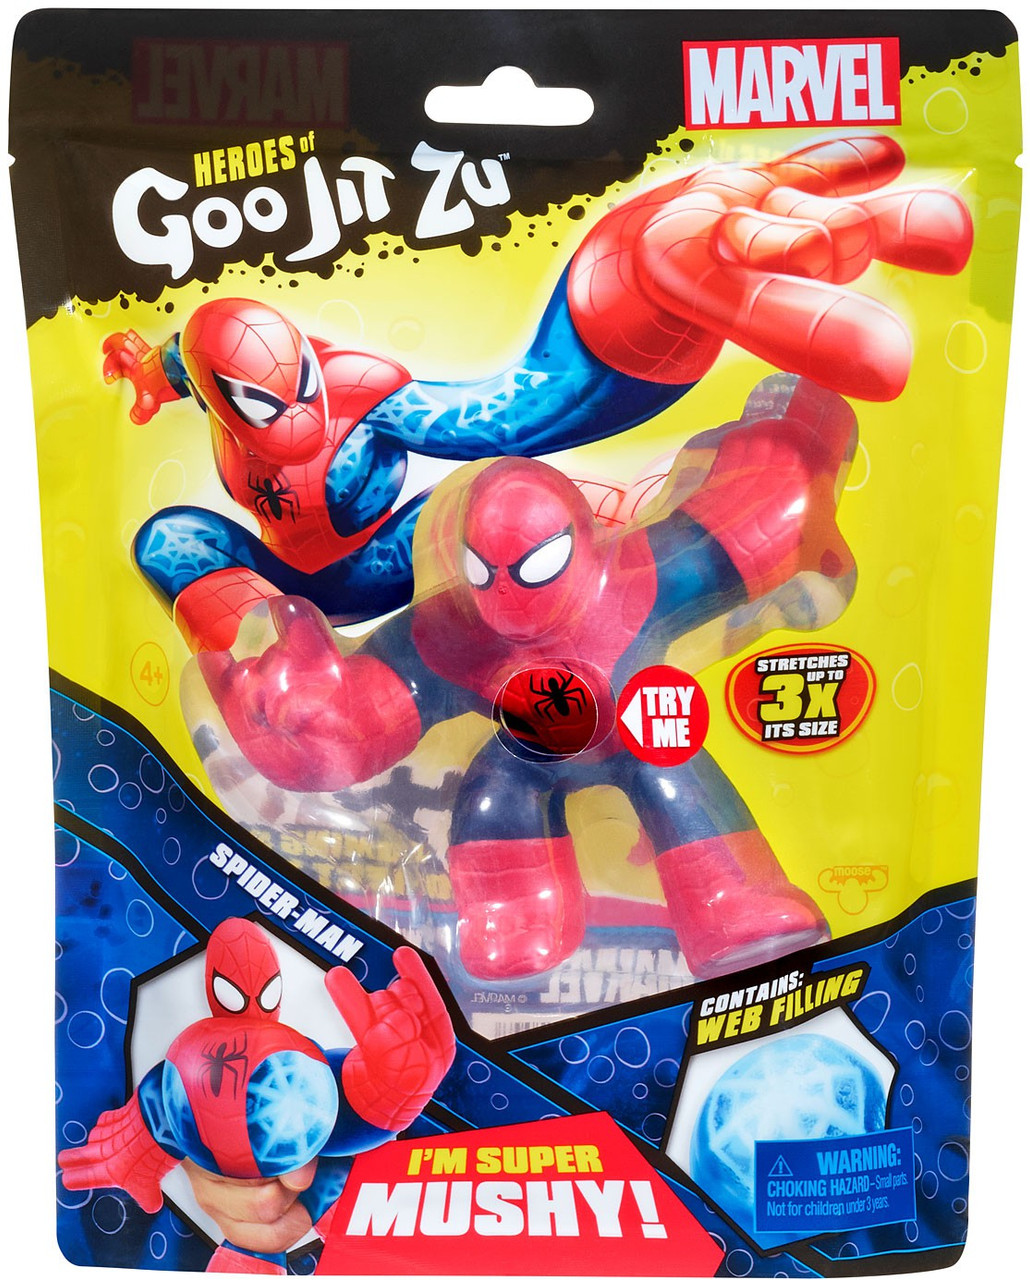 Heroes of Goo jit zu Marvel Iron Man pack 2020